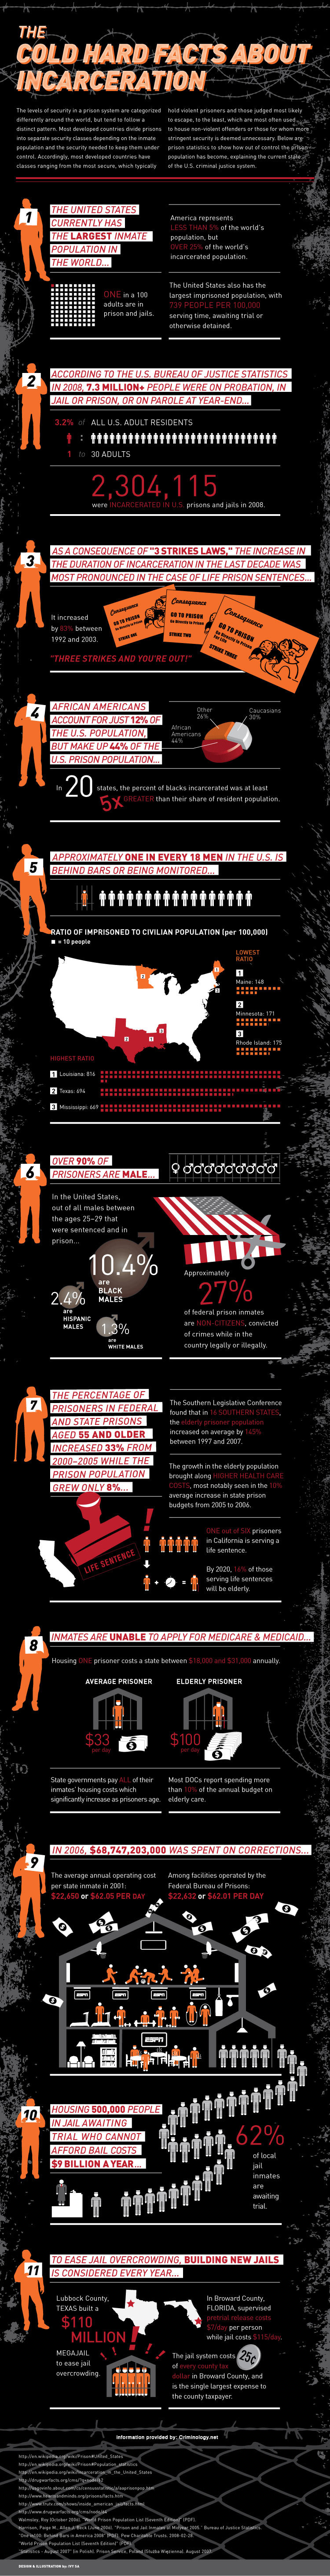 All about Prison infographic